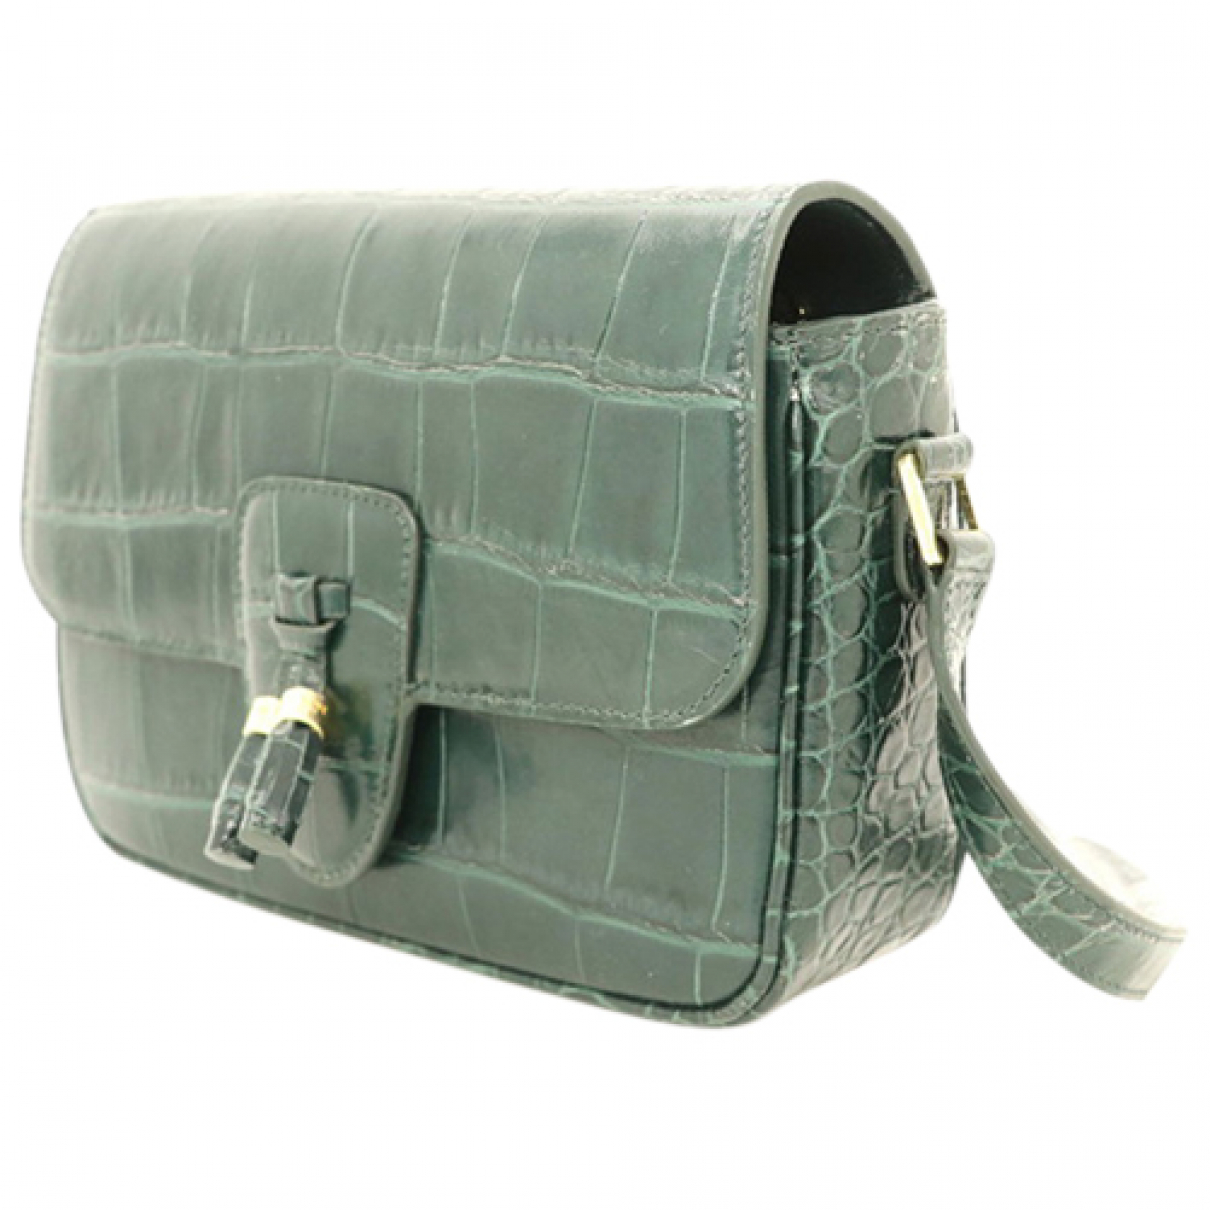 Celine N Green Leather handbag for Women N